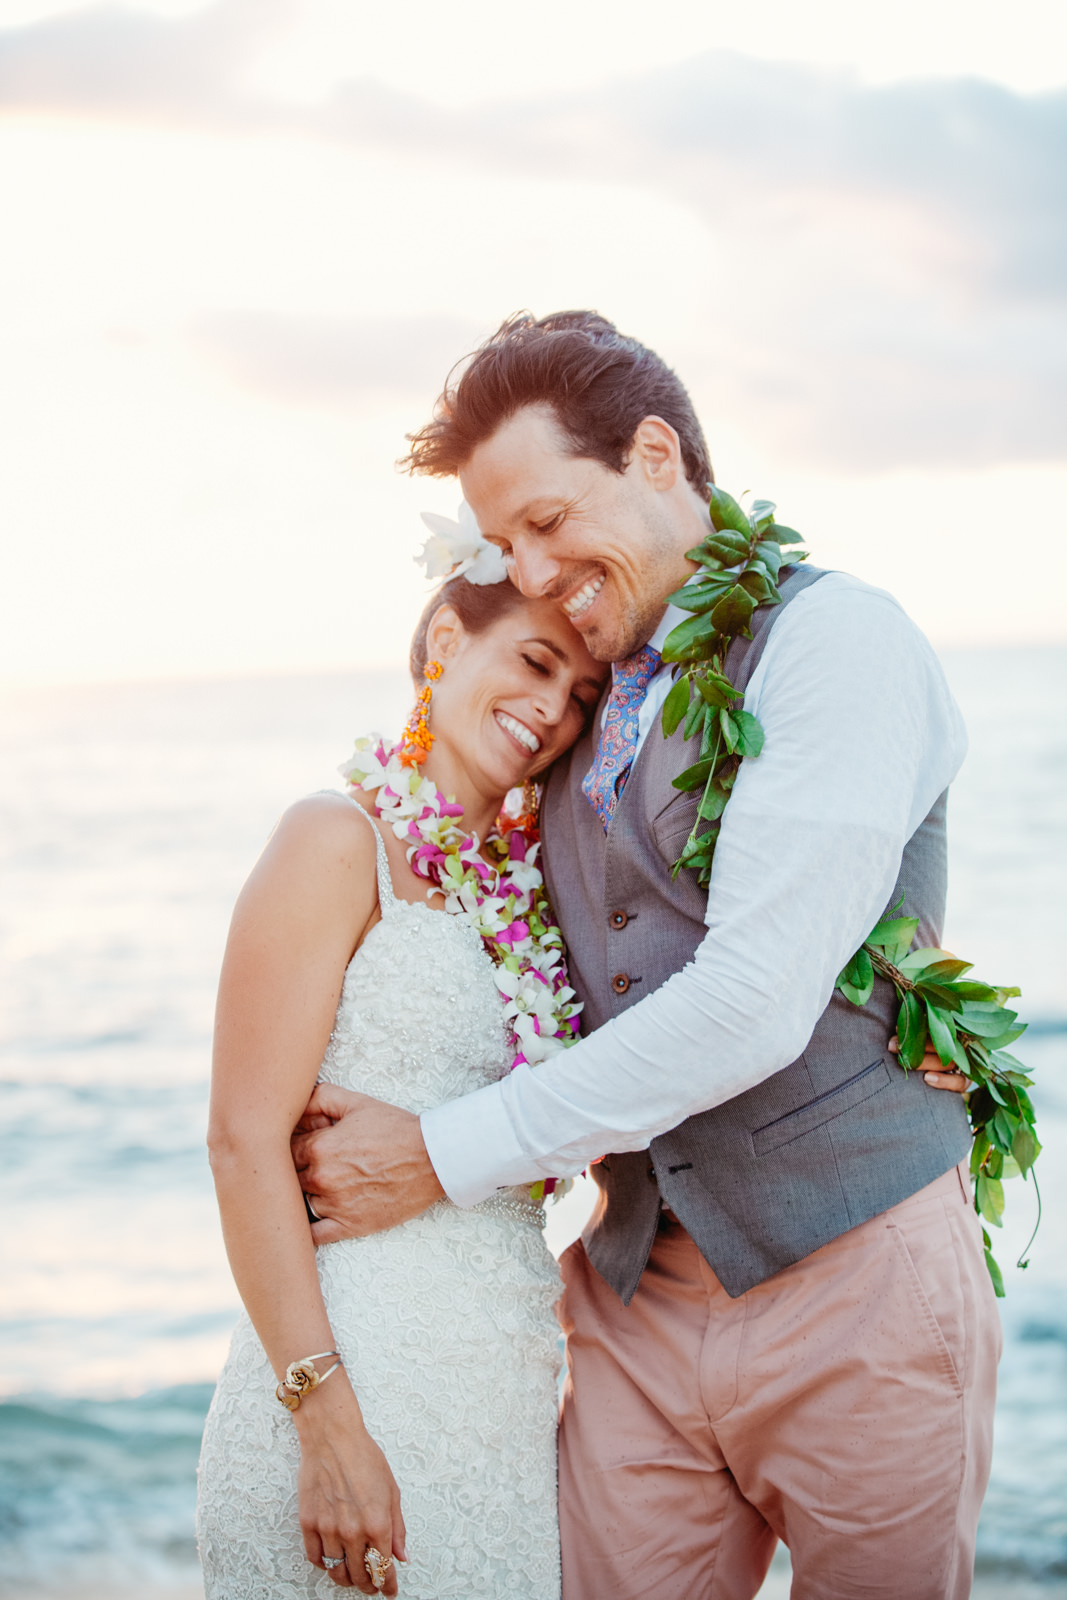 Princeville Hanelei Kauai Hawaii Destination Elopement Wedding 39